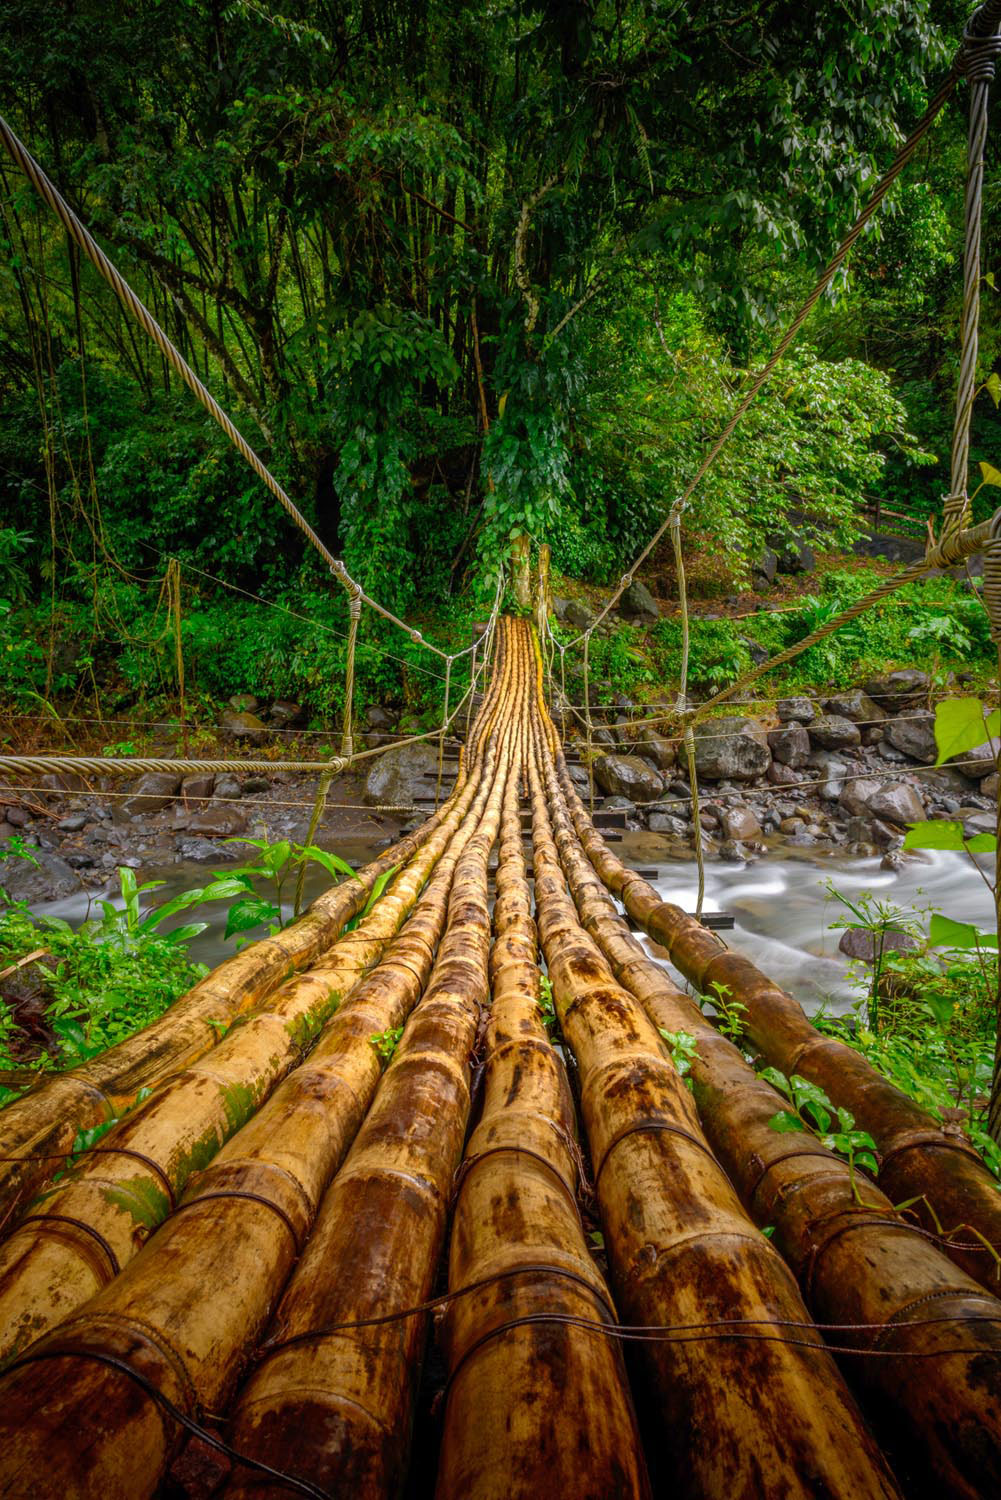 A bamboo bridge is one way to cross a rushing river while hiking in St Vincent's hills. Photo by mbrand85/Shutterstock.com